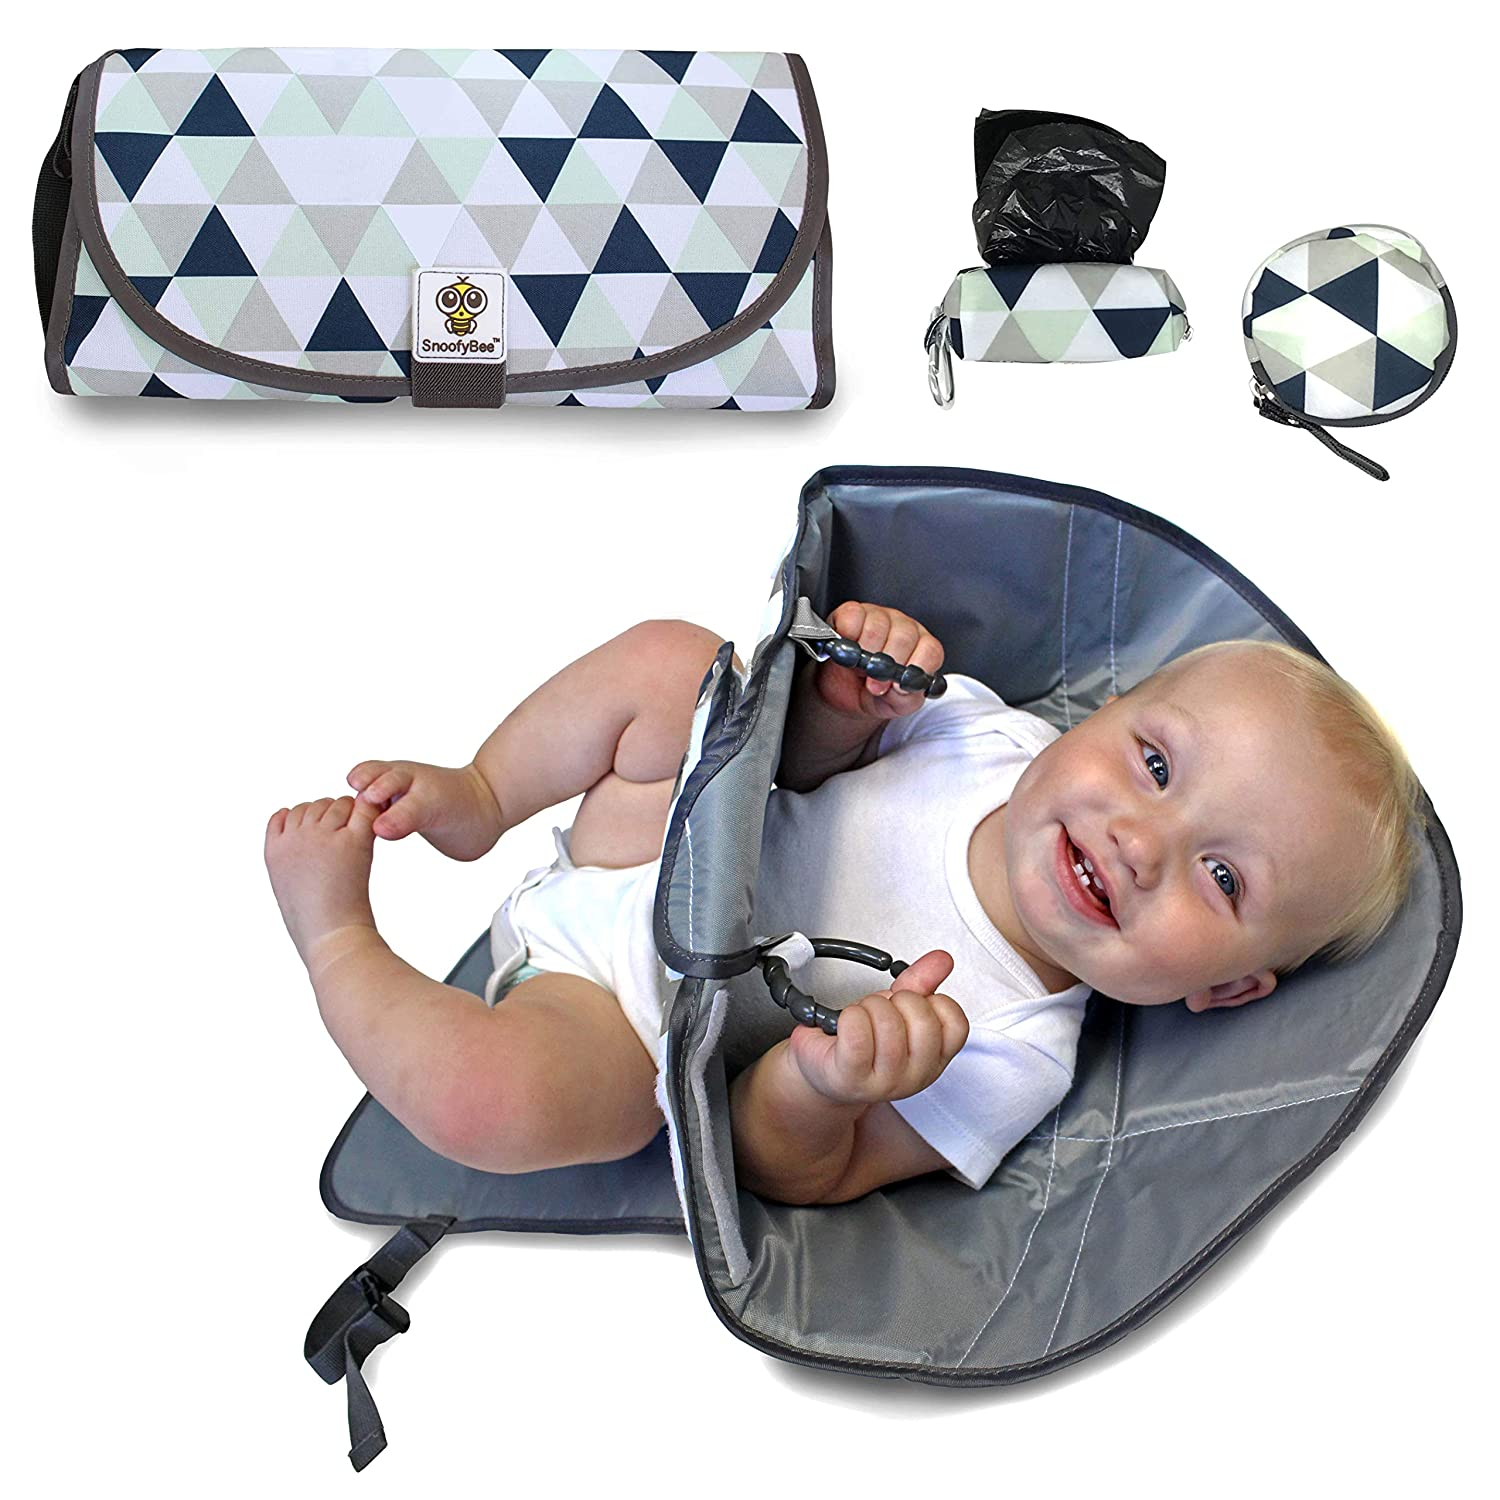 Babies and Toddlers Triangle Blue Changing Station with Redirection Barrier for use with Infants Matching Baggy Dispenser and Pacifier pod SnoofyBee Portable Clean Hands Changing Pad Bundle Set